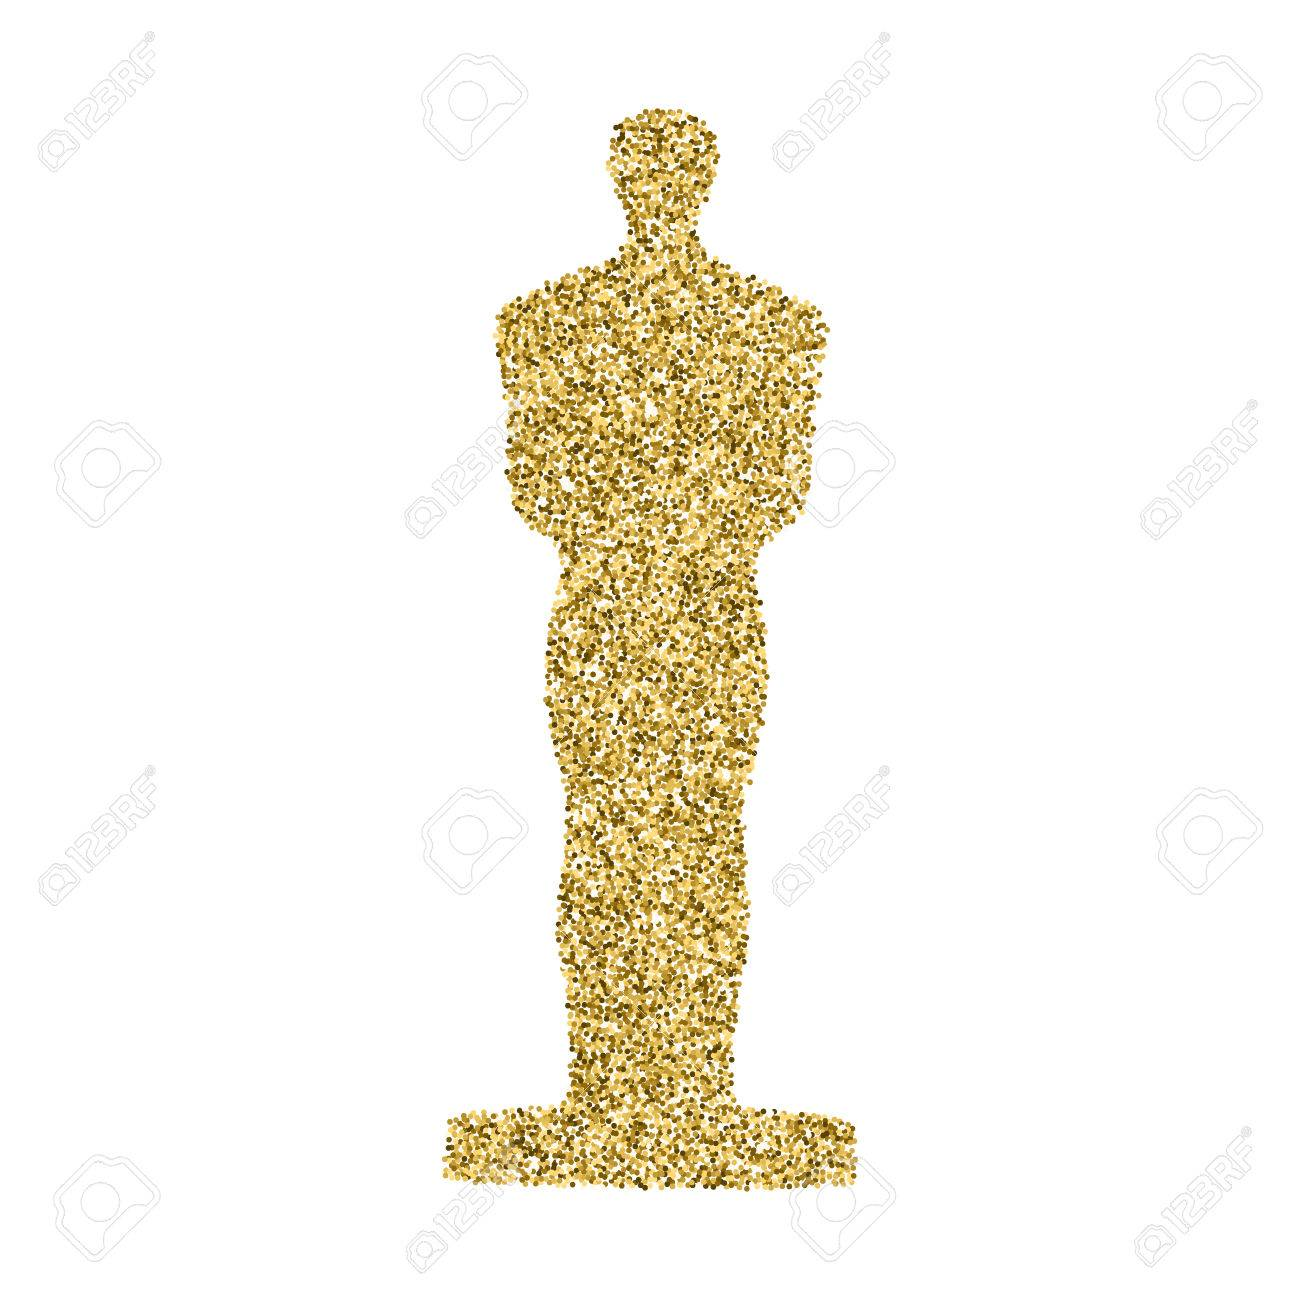 Golden Statue Confetti Glitter Icon Isolated On White Background Easy To Use And Edit Graphic